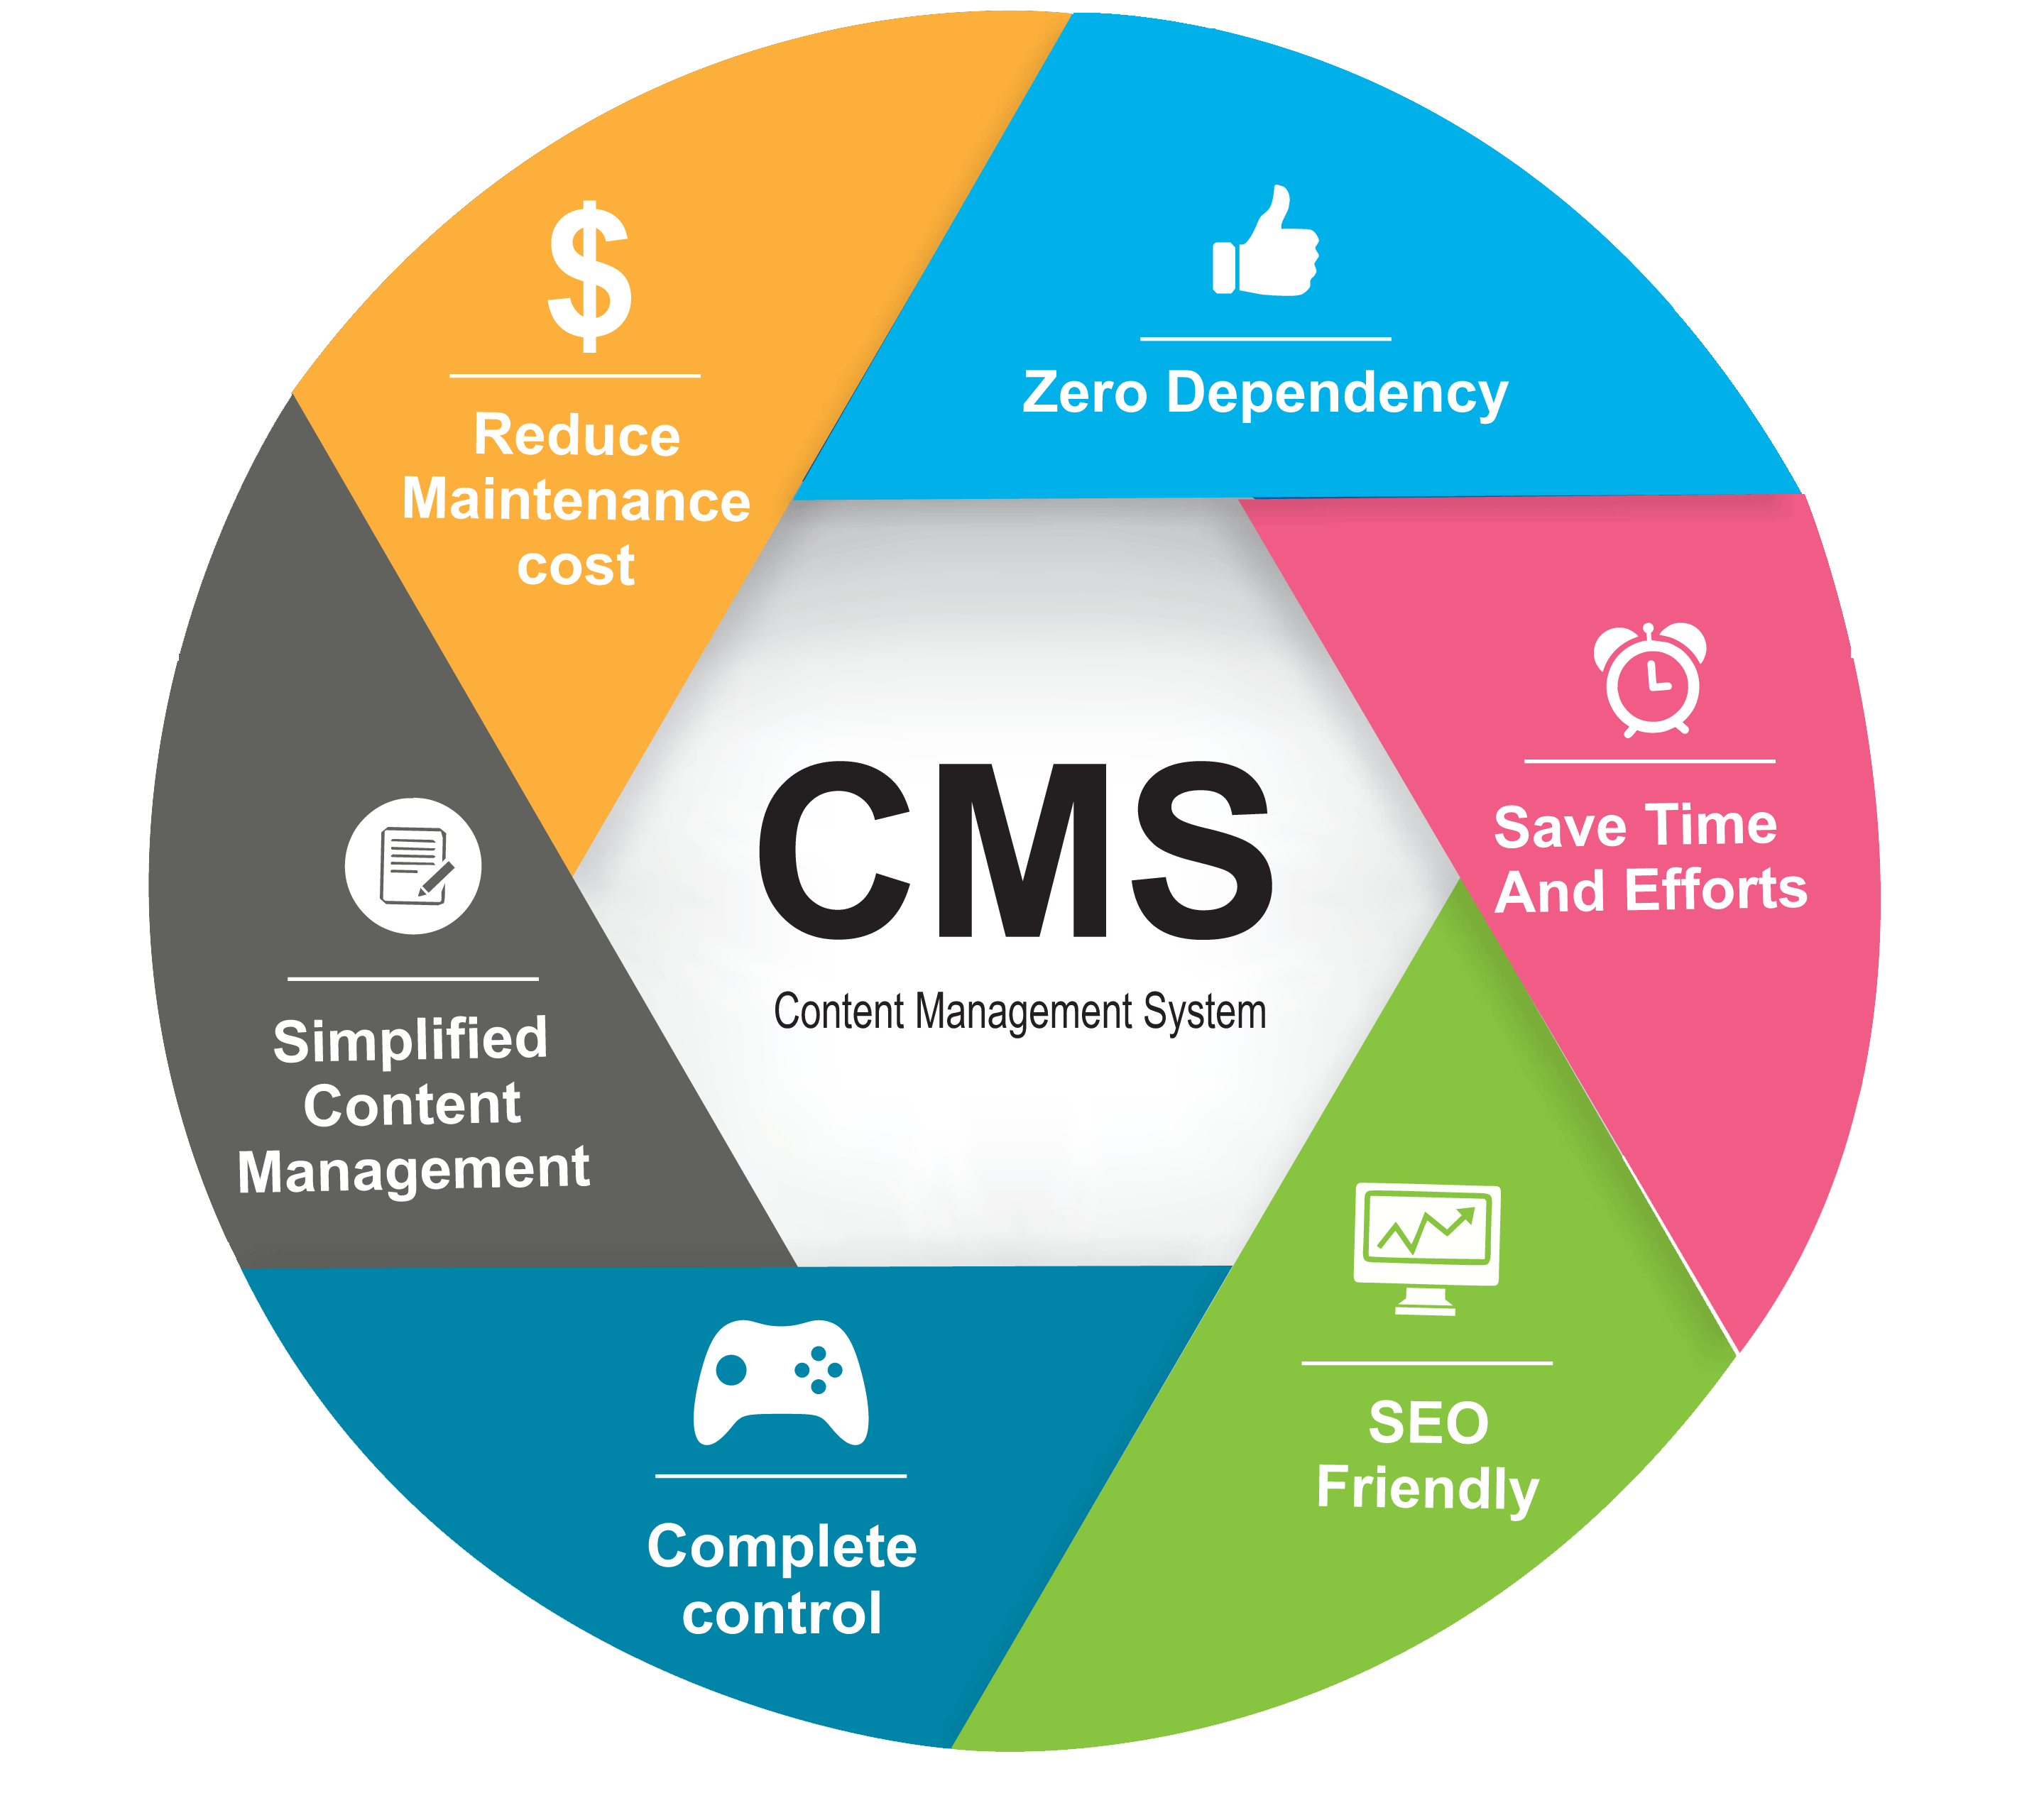 How To Build A Content Management System